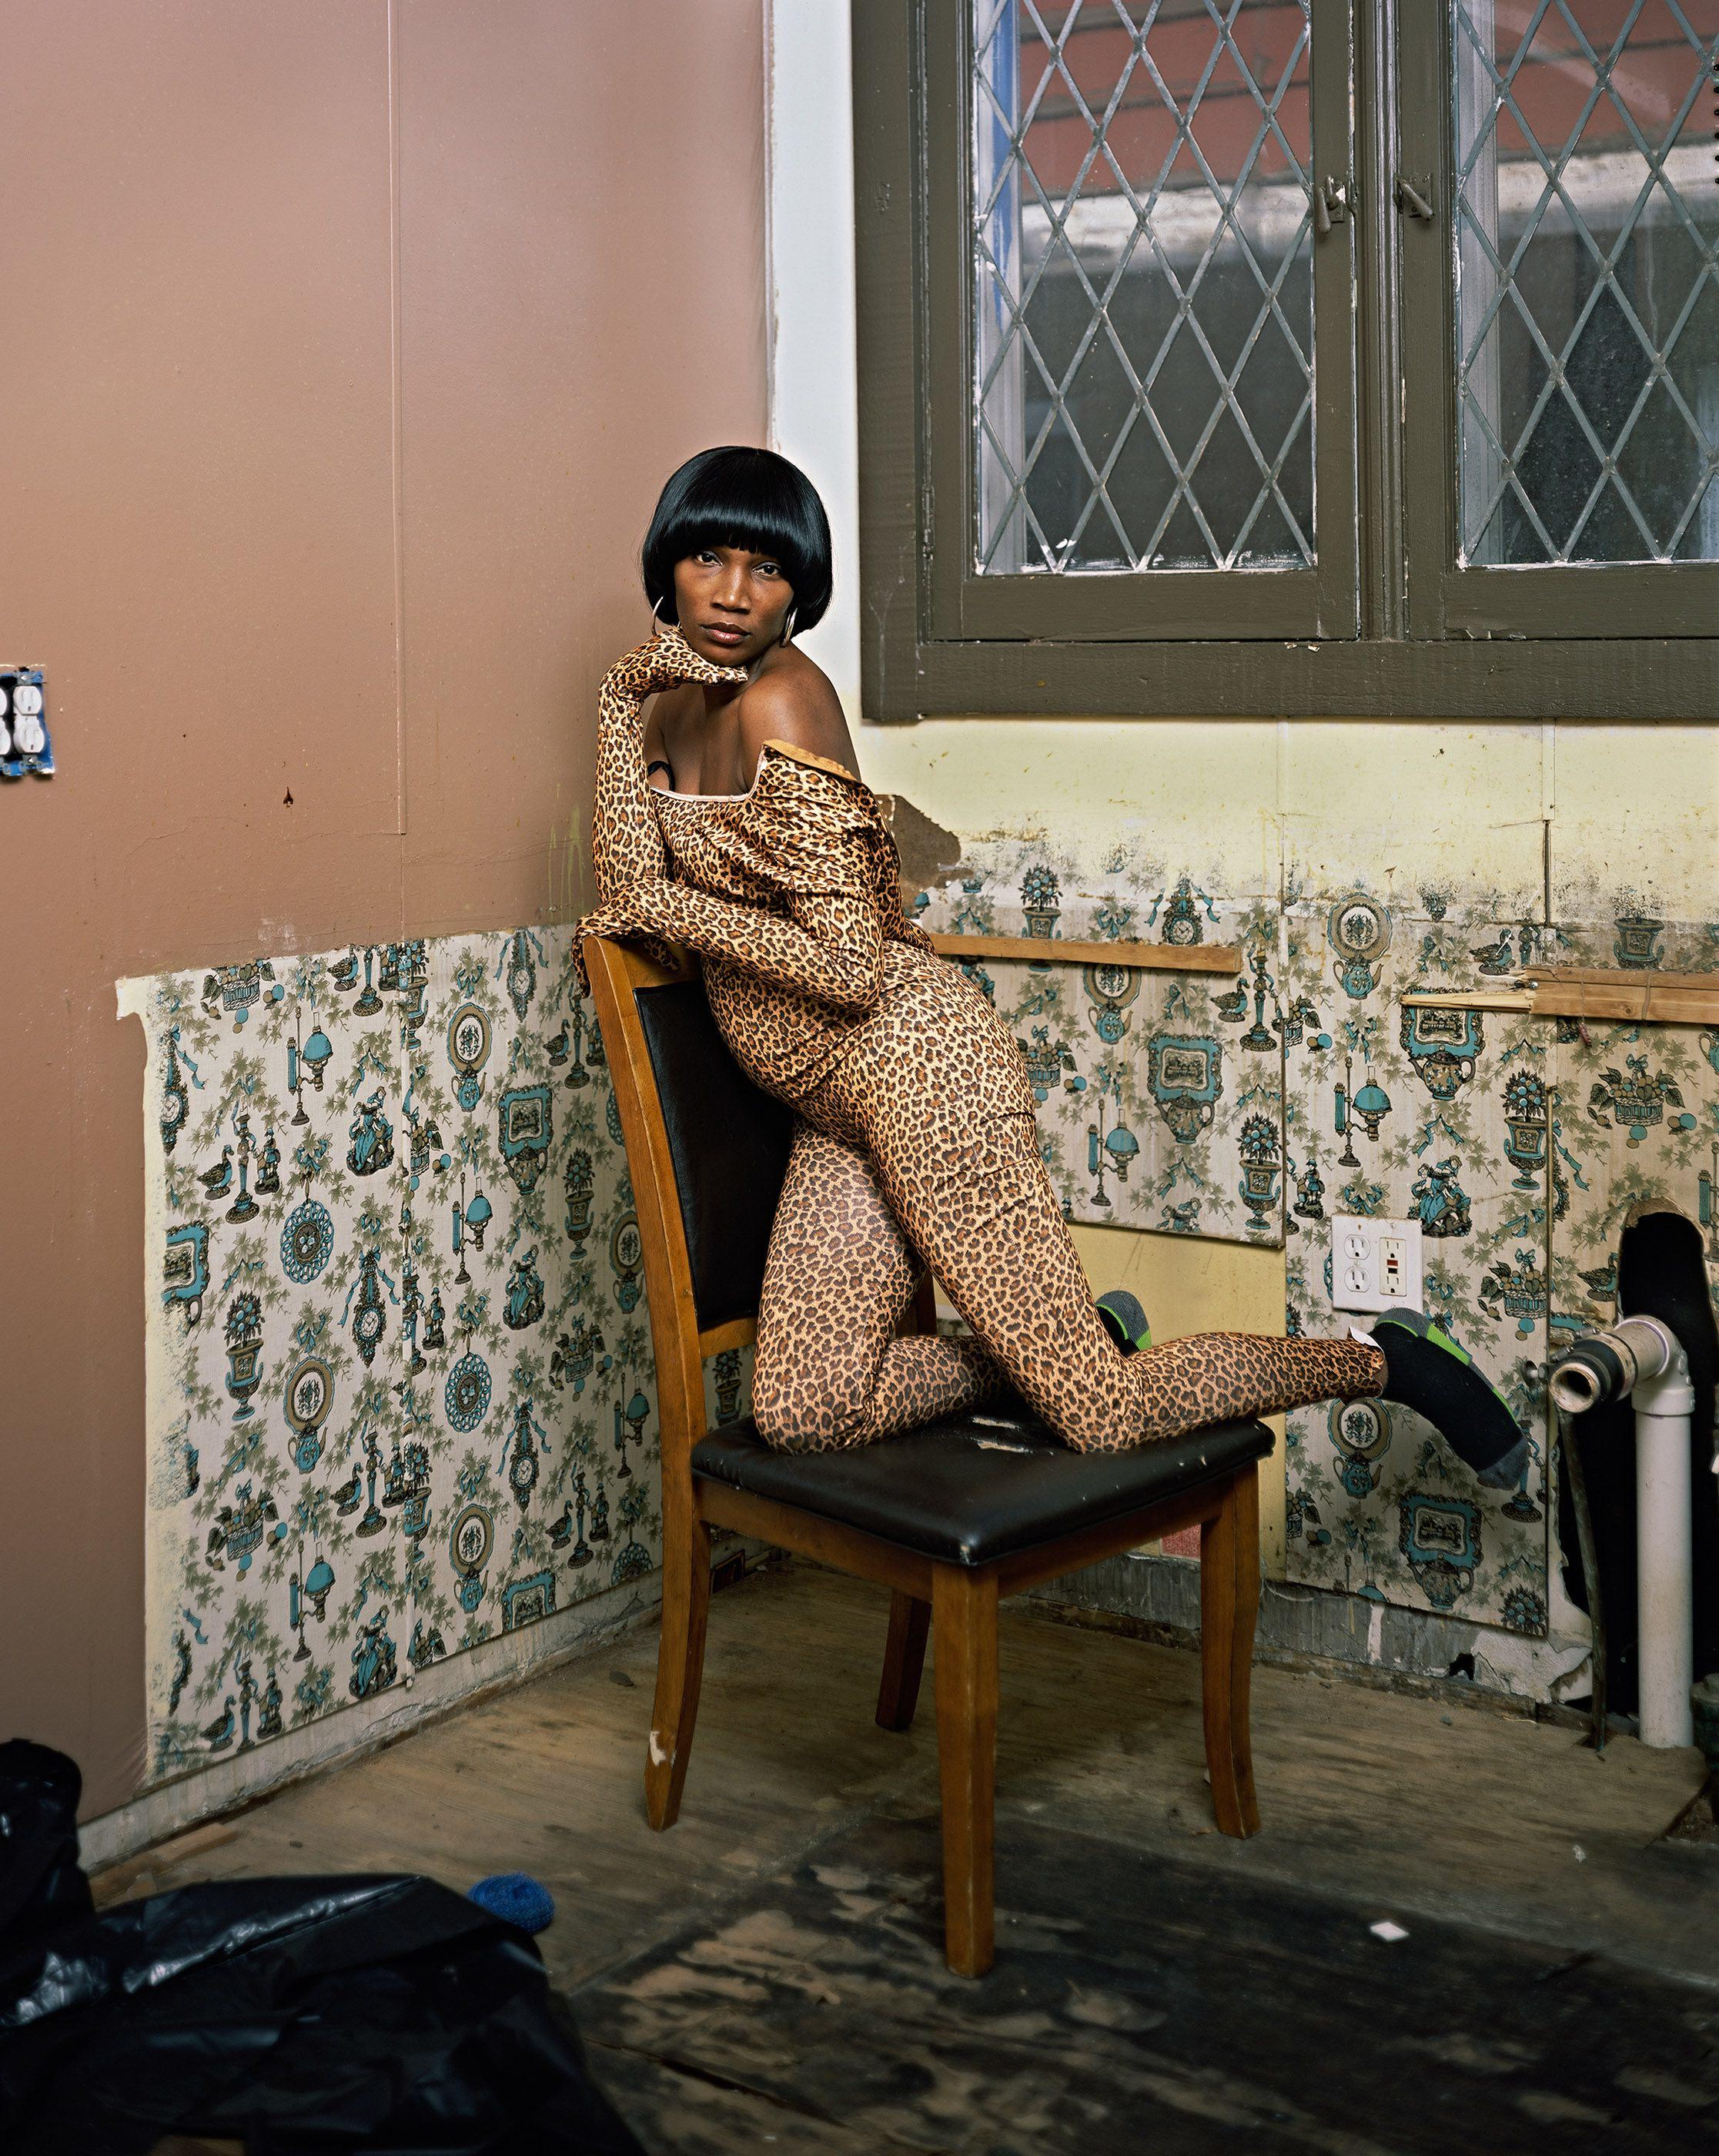 Deana Lawson, Nikki's Kitchen, 2015. © Cpyright the artist